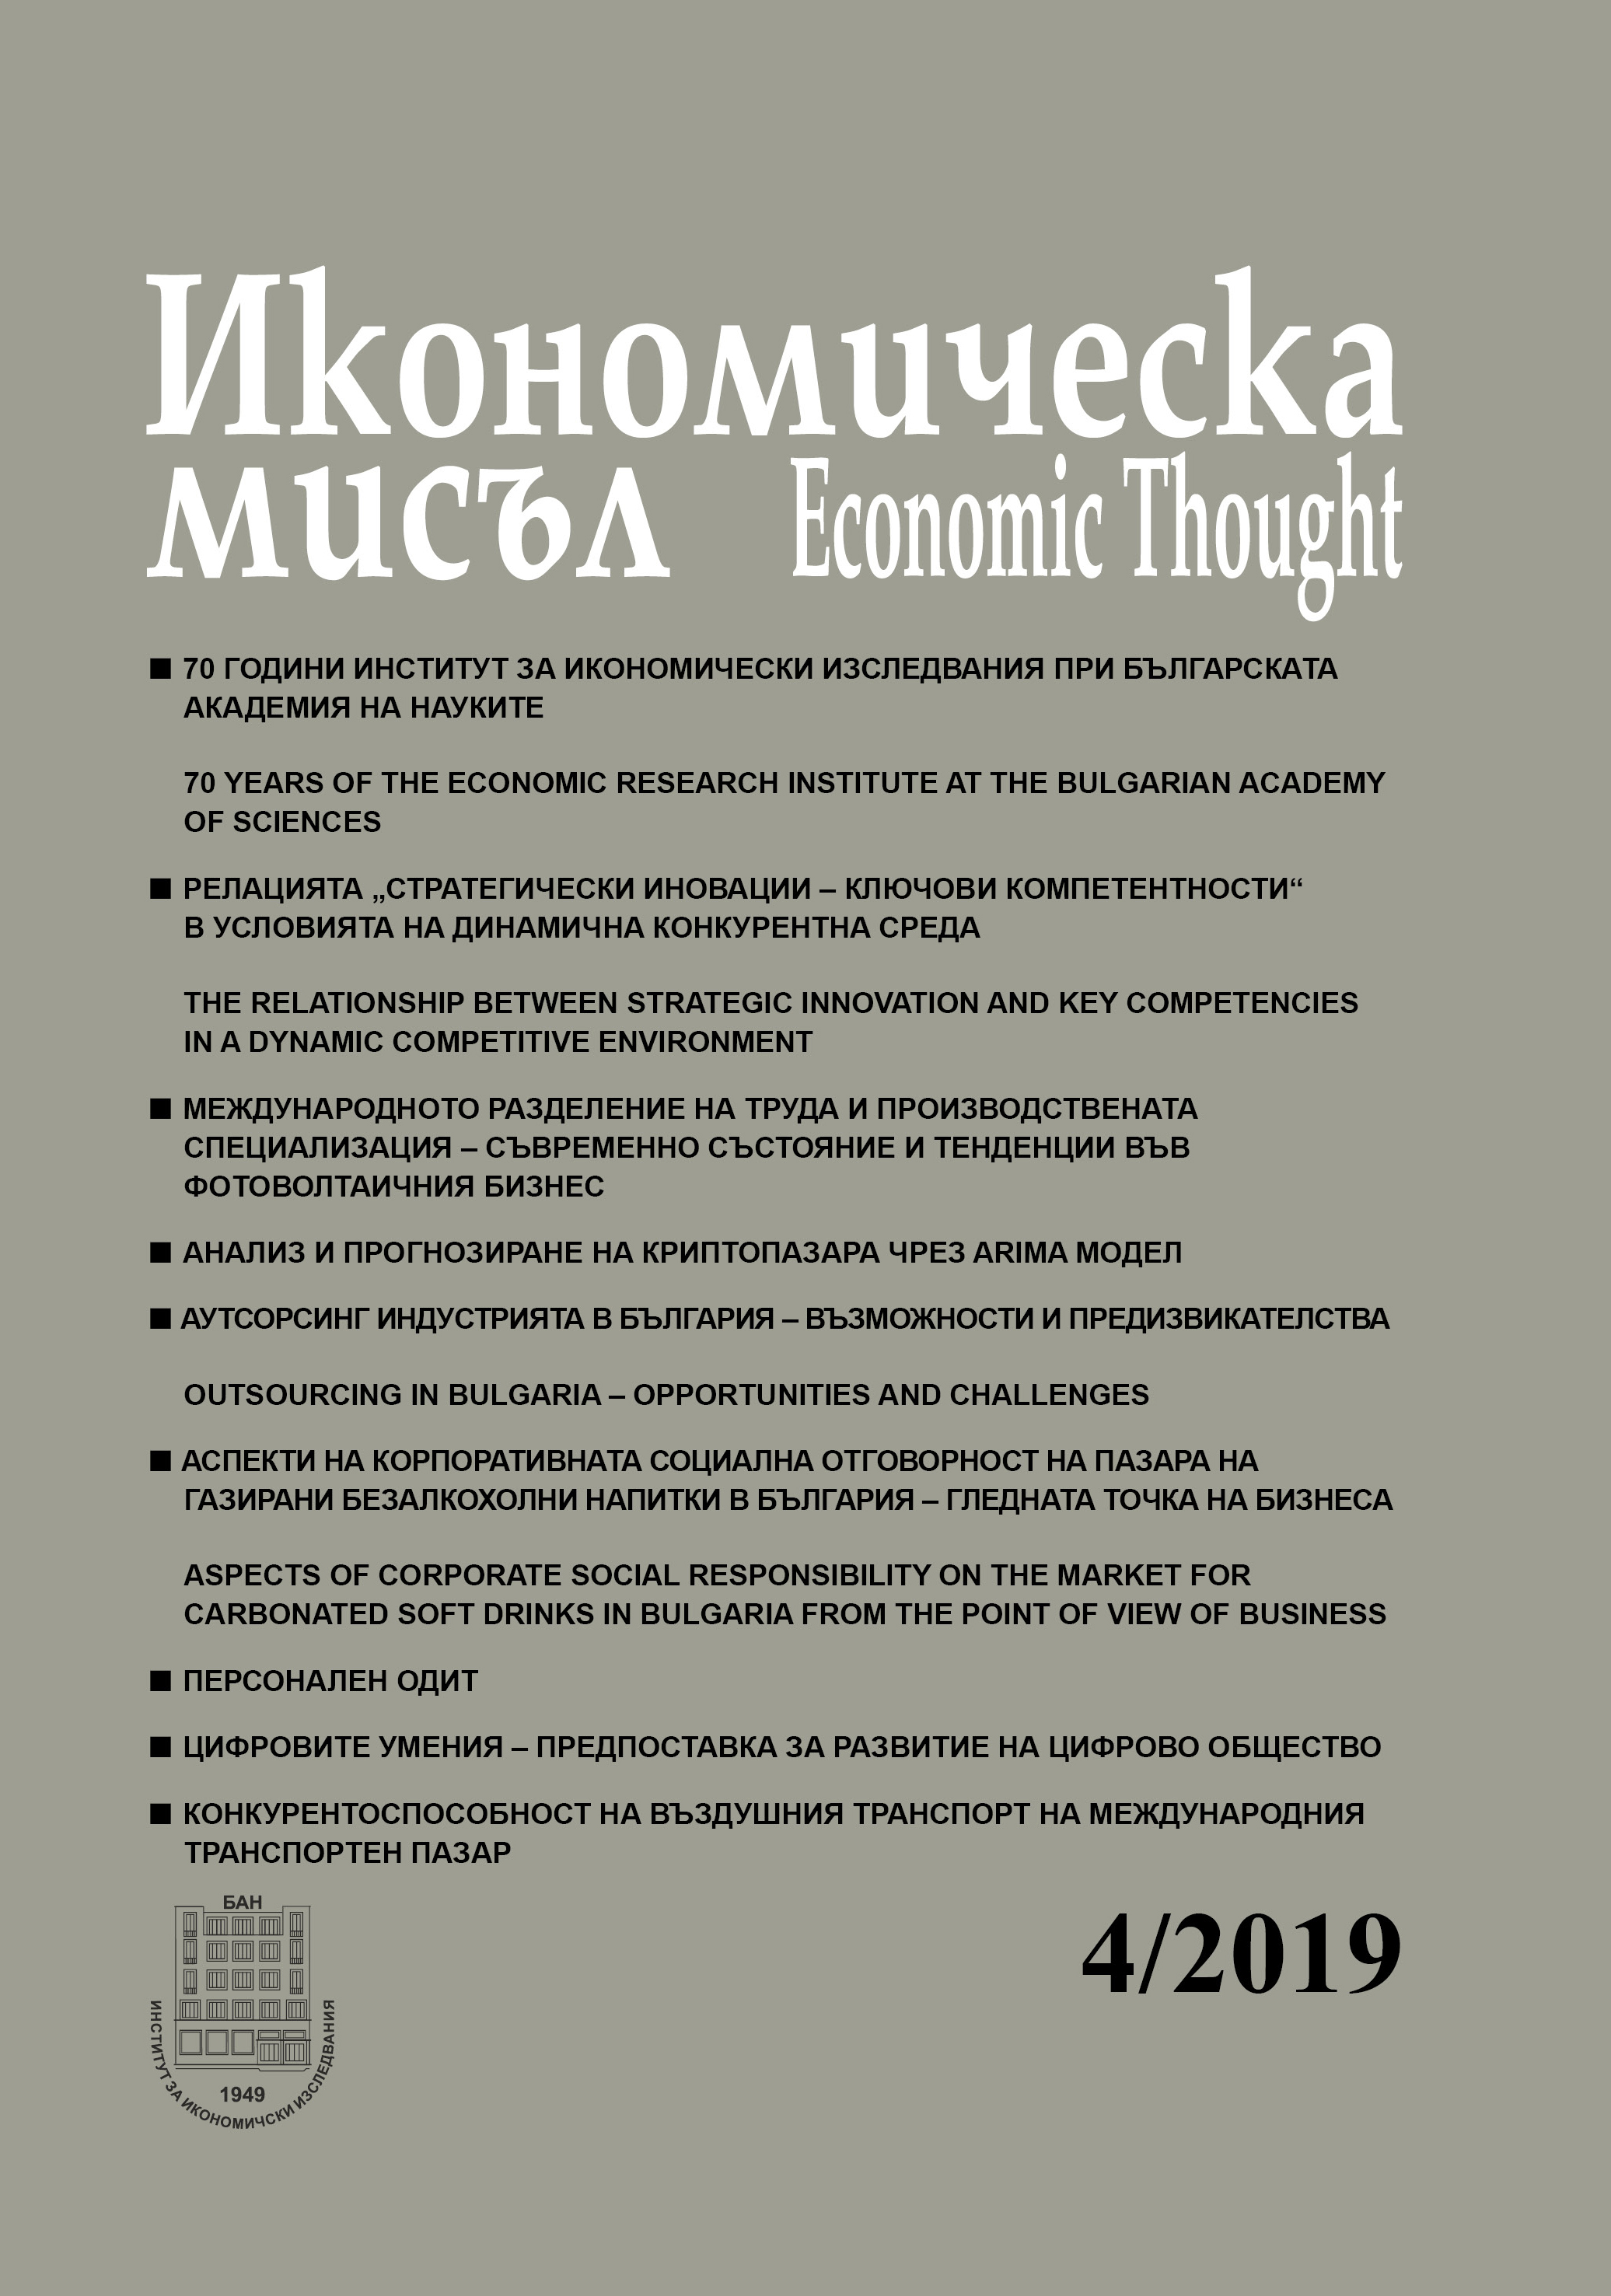 70 years of the Economic Research Institute at the Bulgarian Academy of Sciences